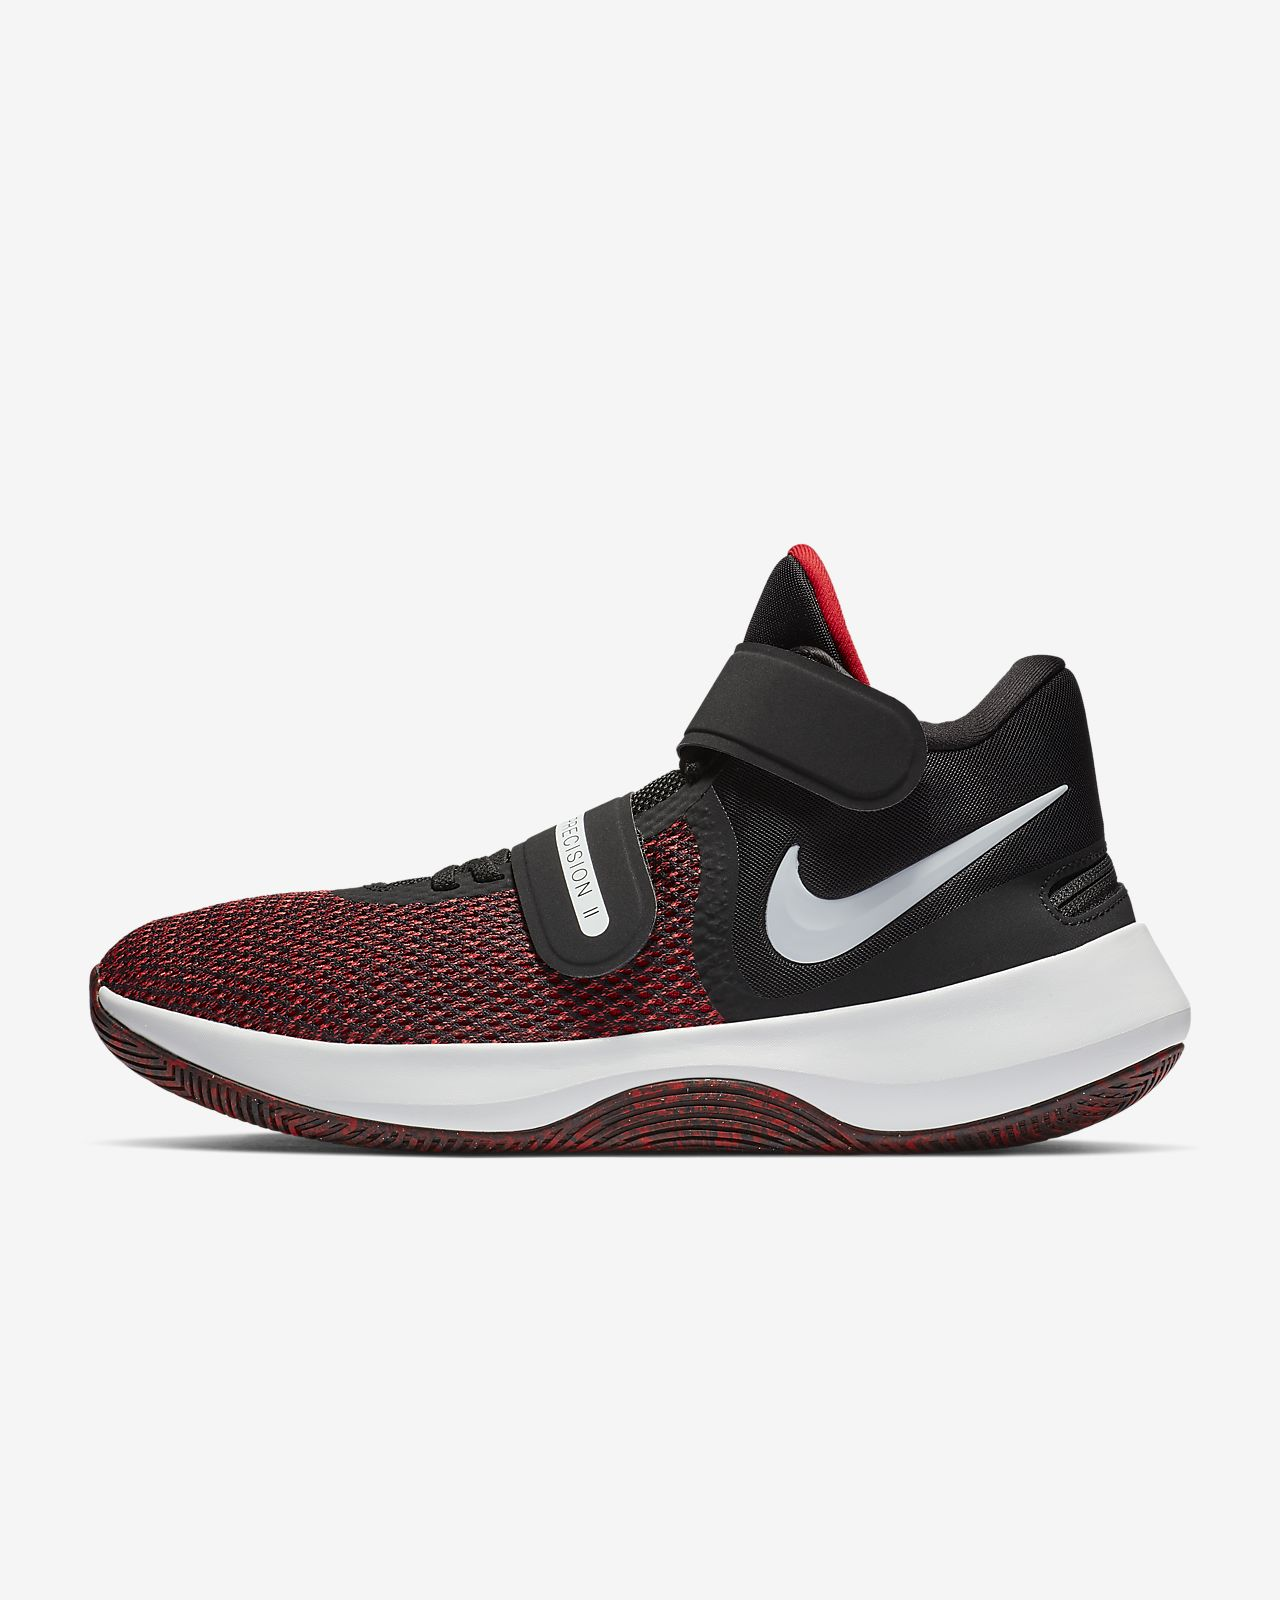 new style fb549 f1f4c ... Chaussure de basketball Nike Air Precision 2 FlyEase pour Homme